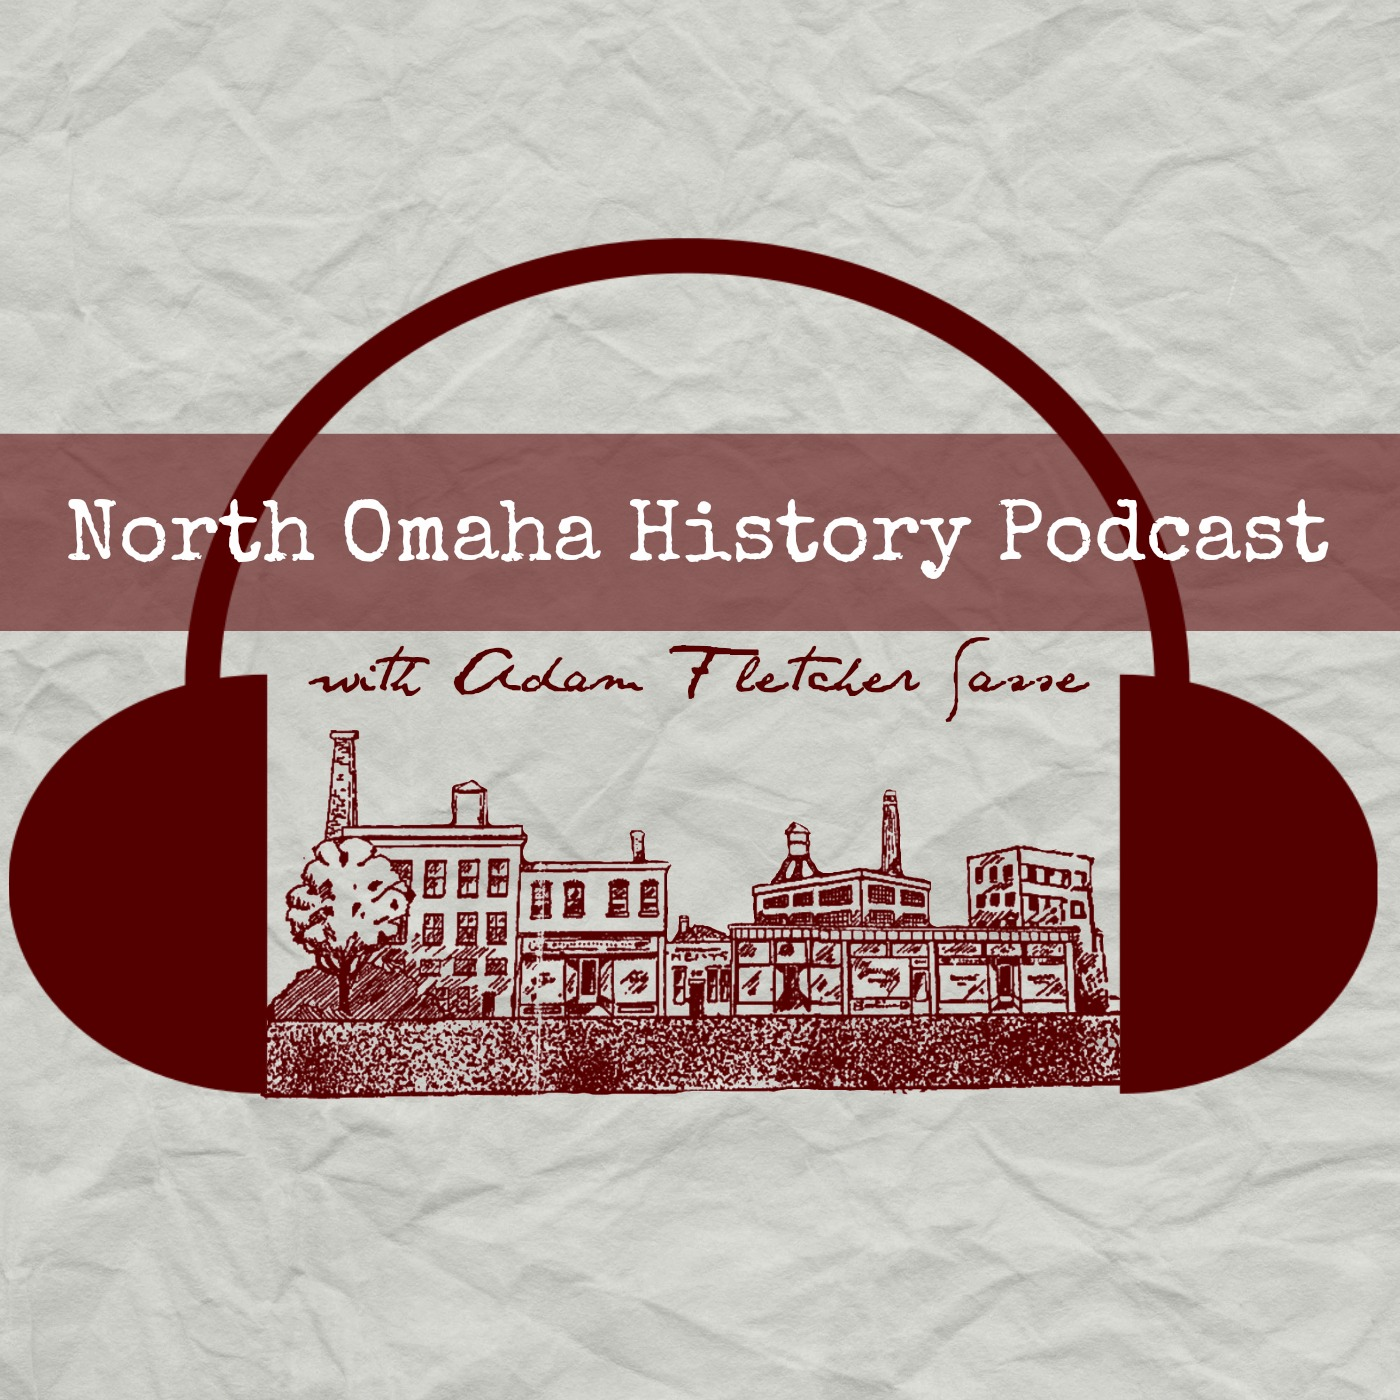 North Omaha History Podcast